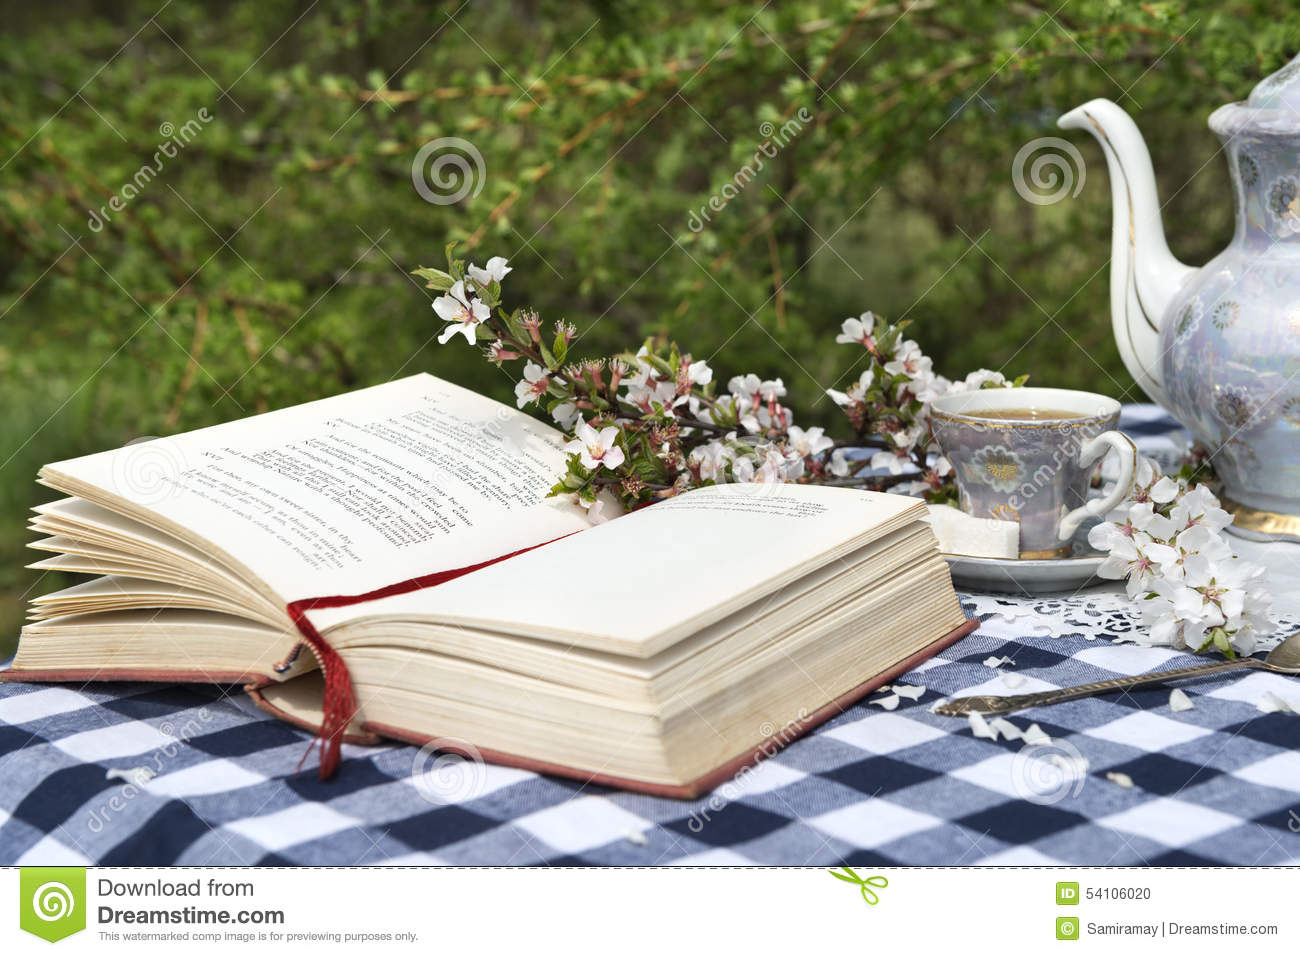 Set The Table Book Open Book And Old Tea Set On The Table Stock Photo Image 54106020